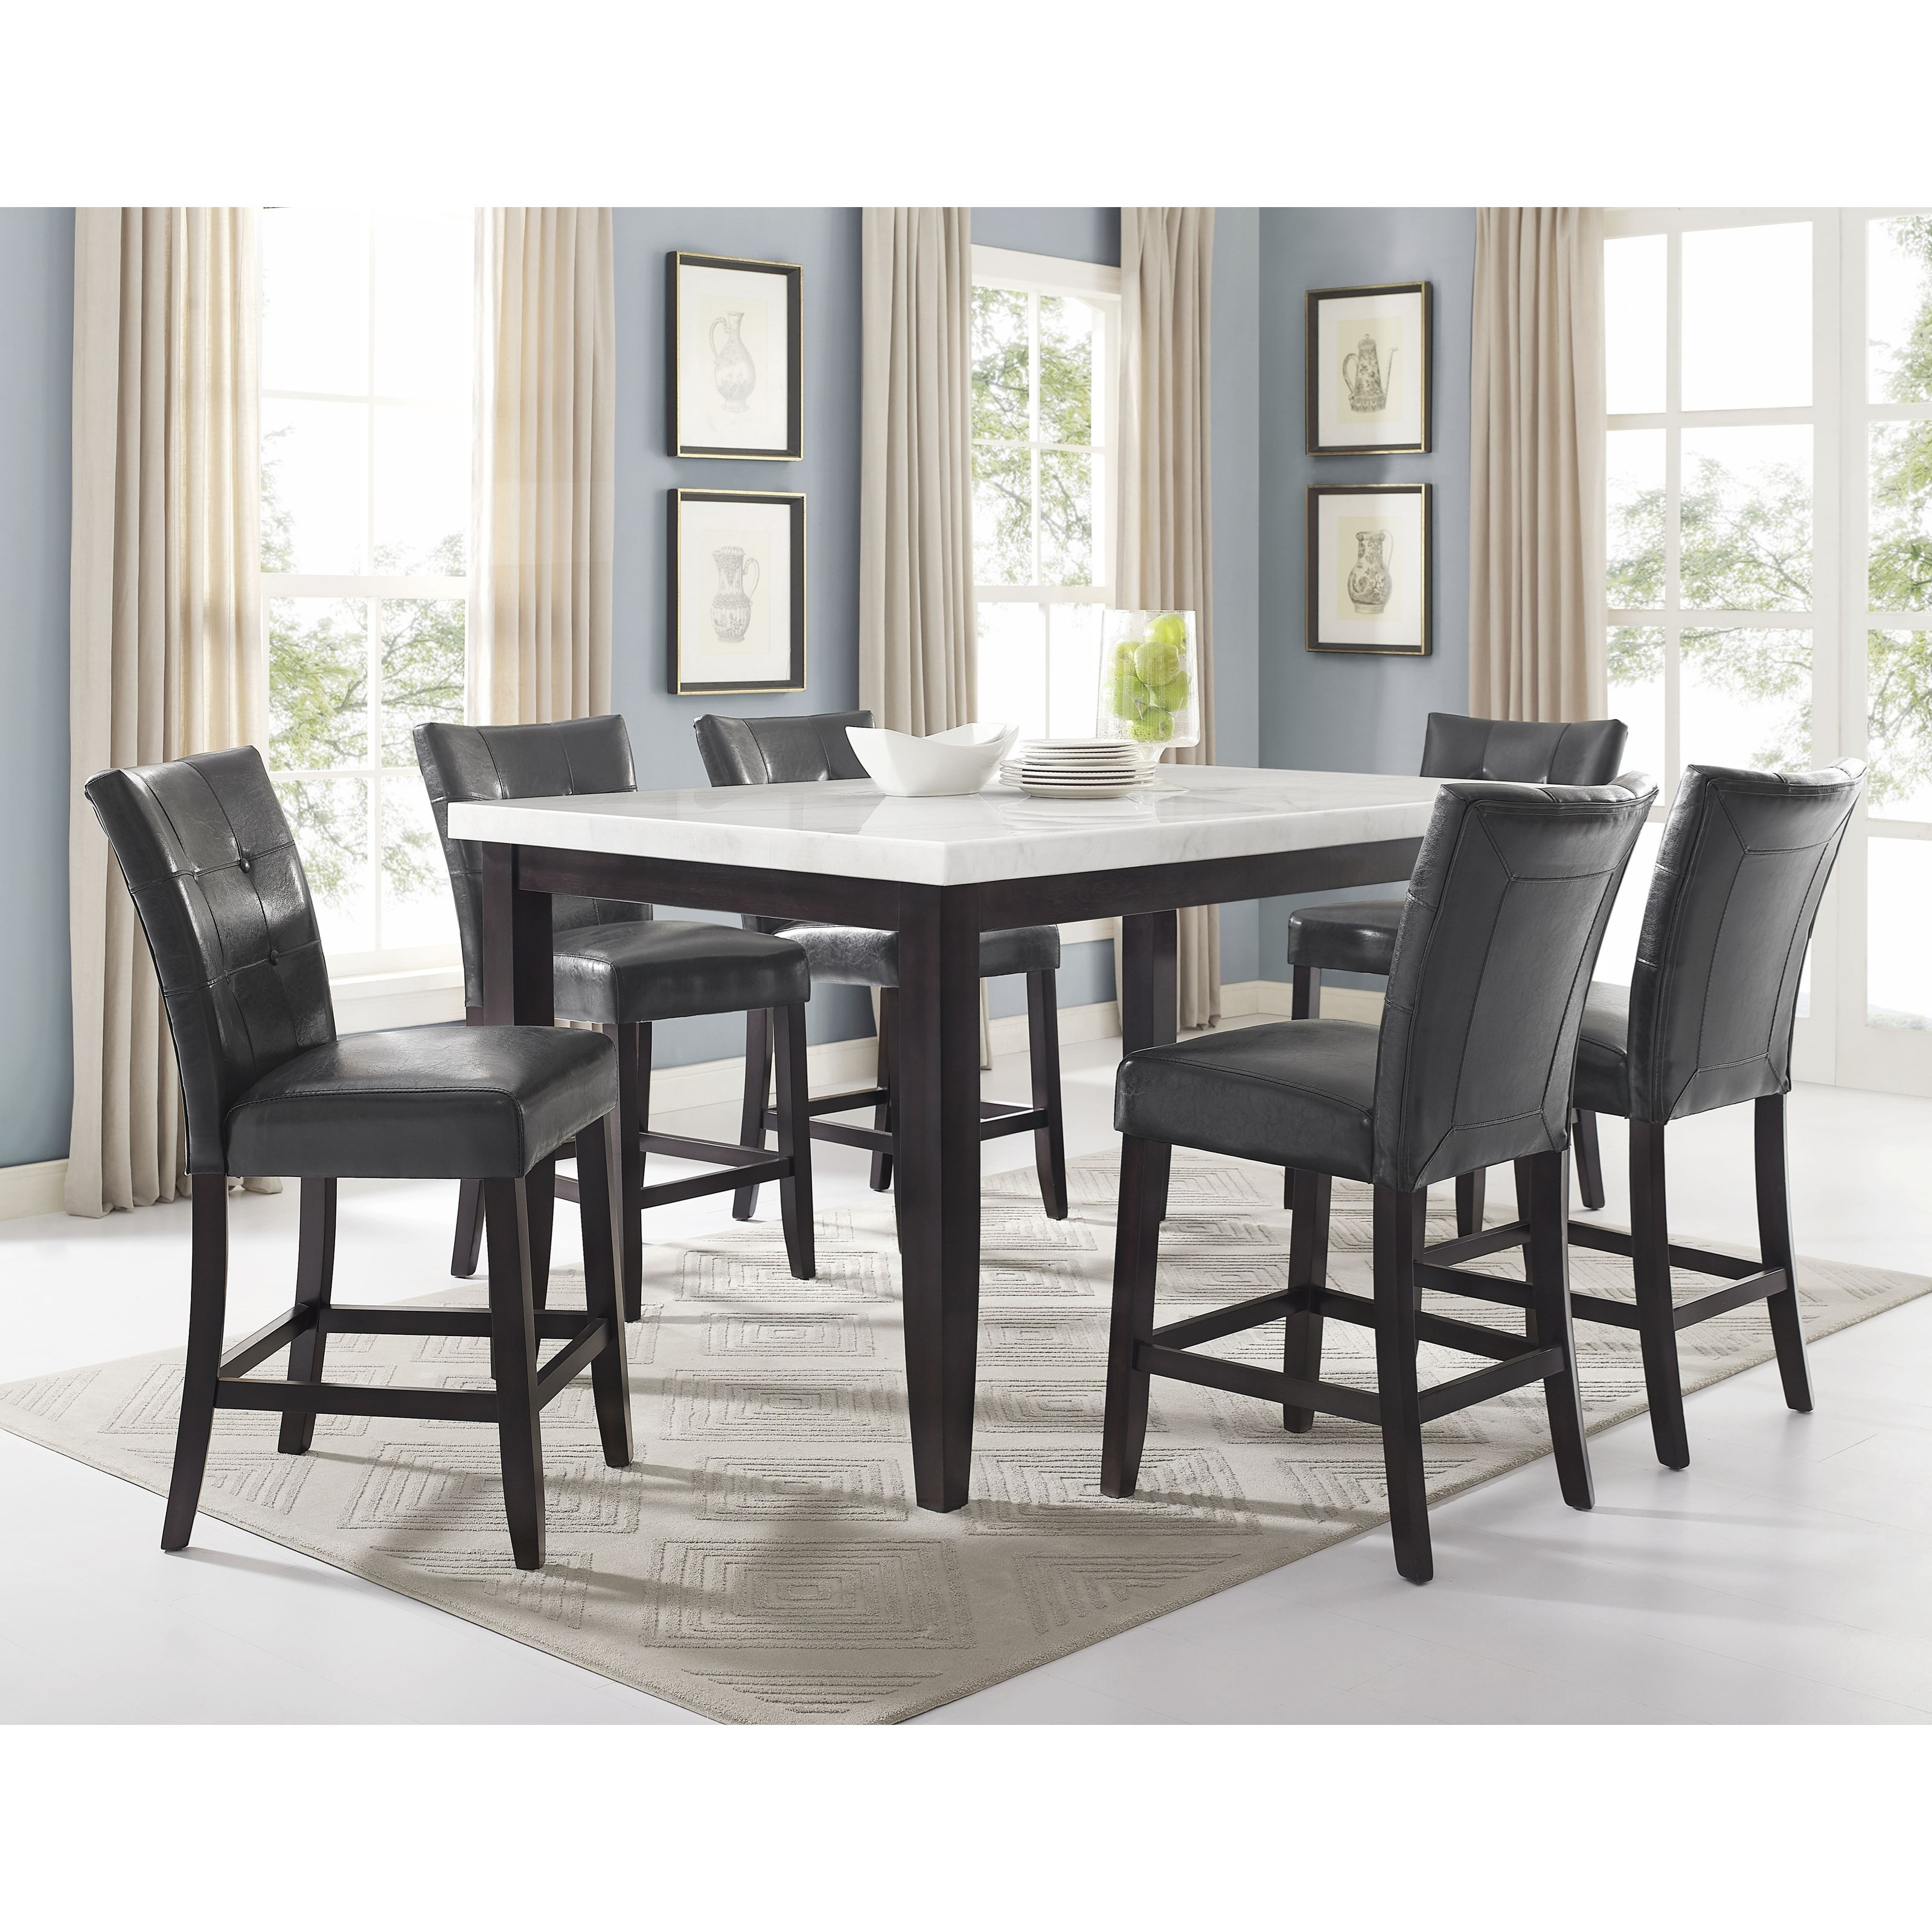 Francis 7 Piece Table and Chair Set by Steve Silver at Northeast Factory Direct